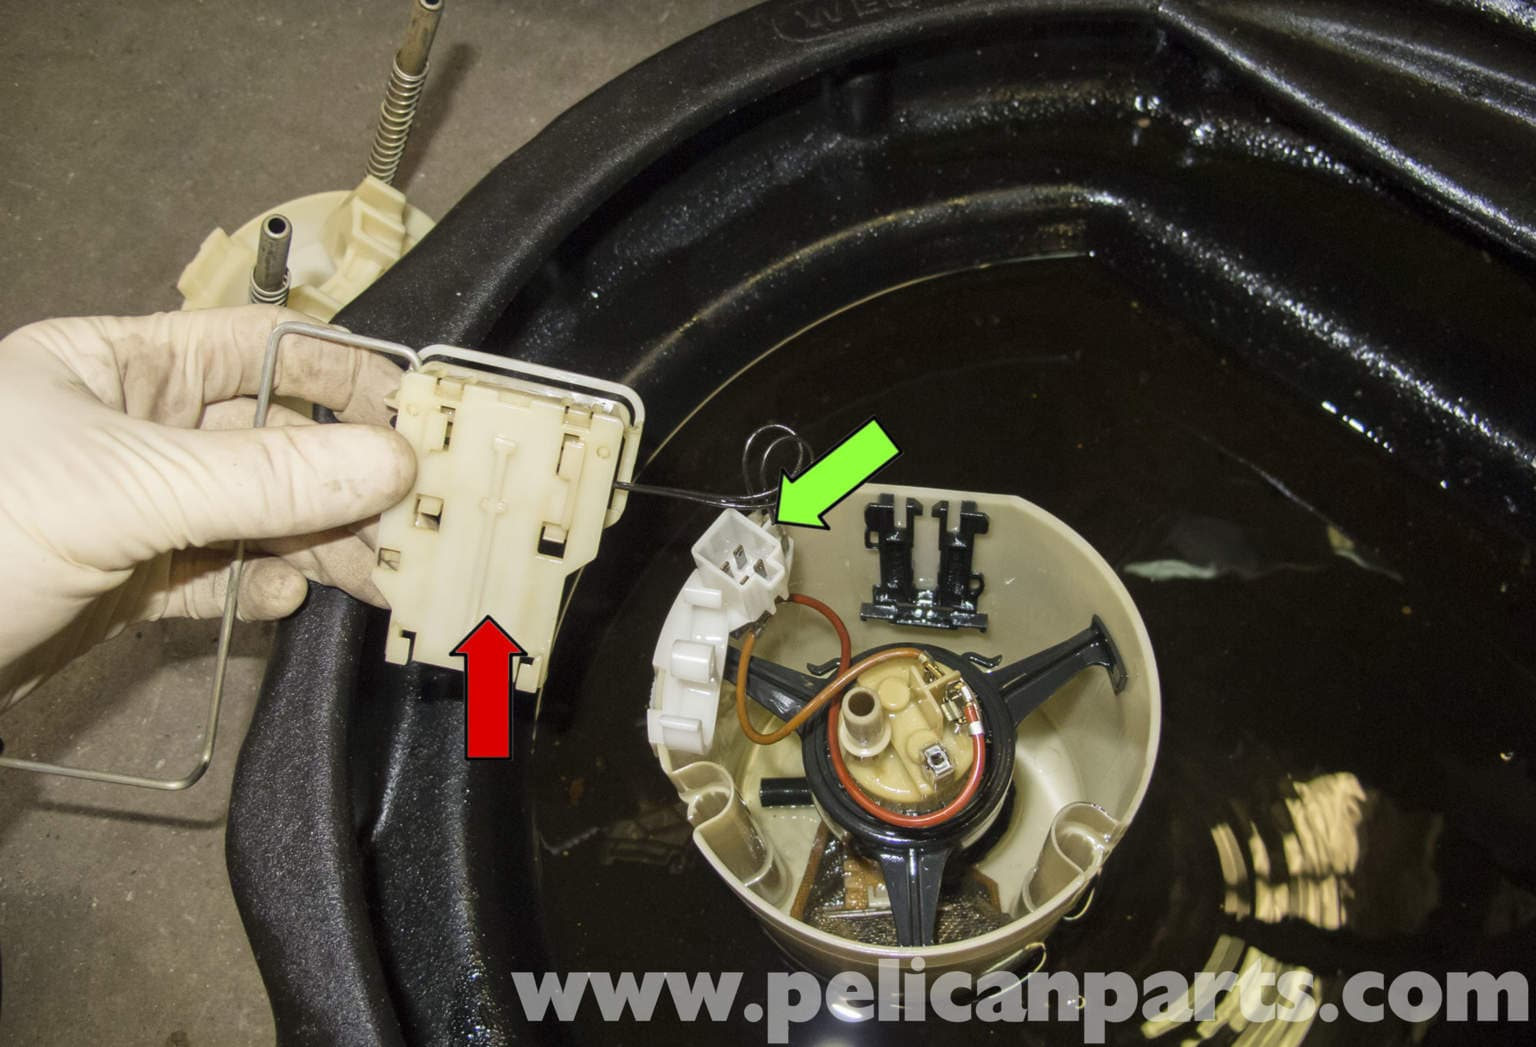 Mercedes benz w211 fuel pump replacement 2003 2009 e320 for Replacement parts for mercedes benz